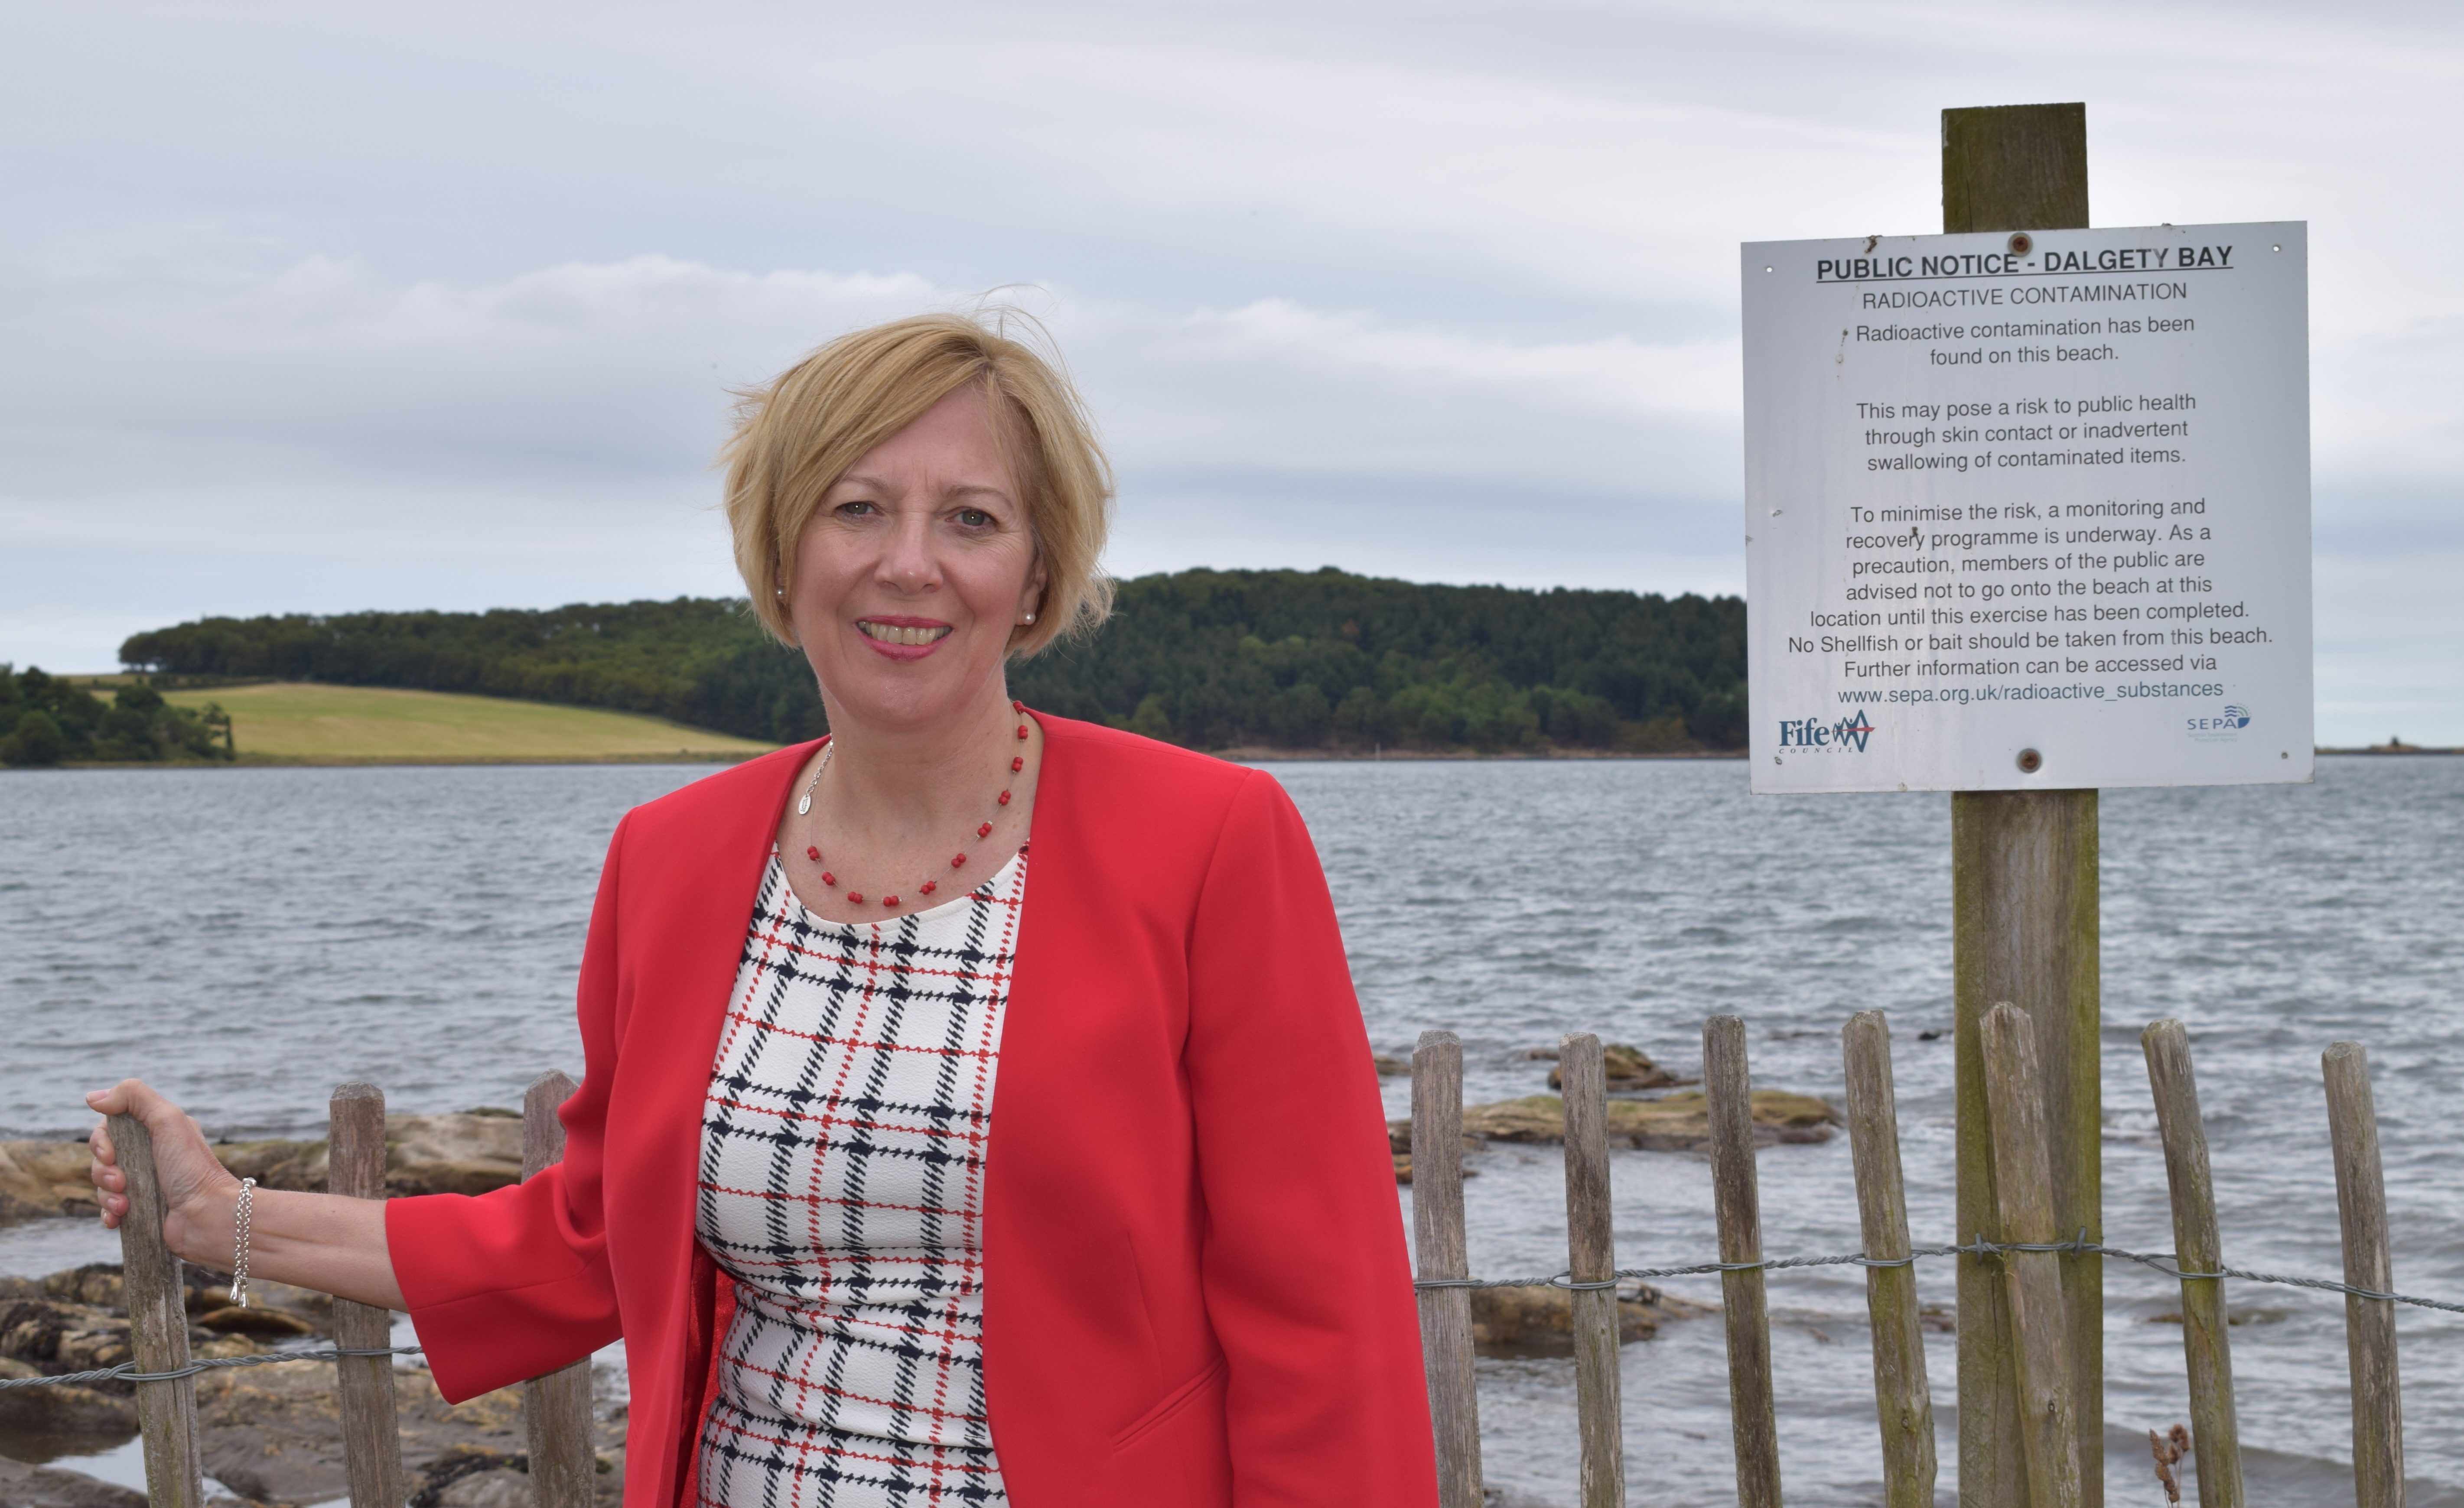 Mrs Laird at the warning sign on the foreshore